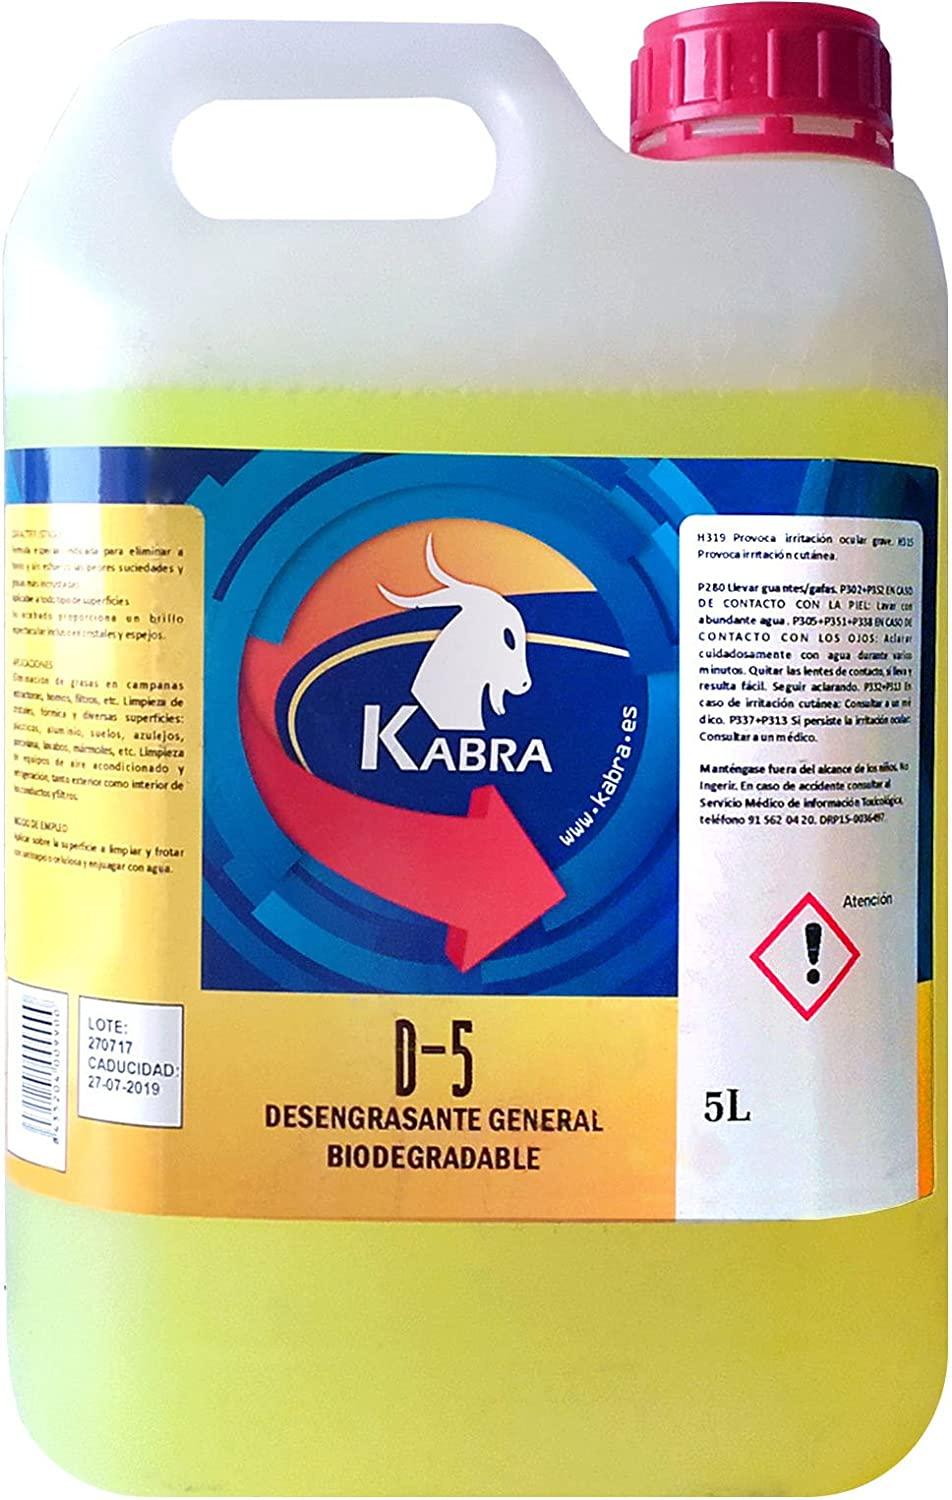 Kabra Desengrasante Biodegradable General (1 litro): Amazon.es: Hogar